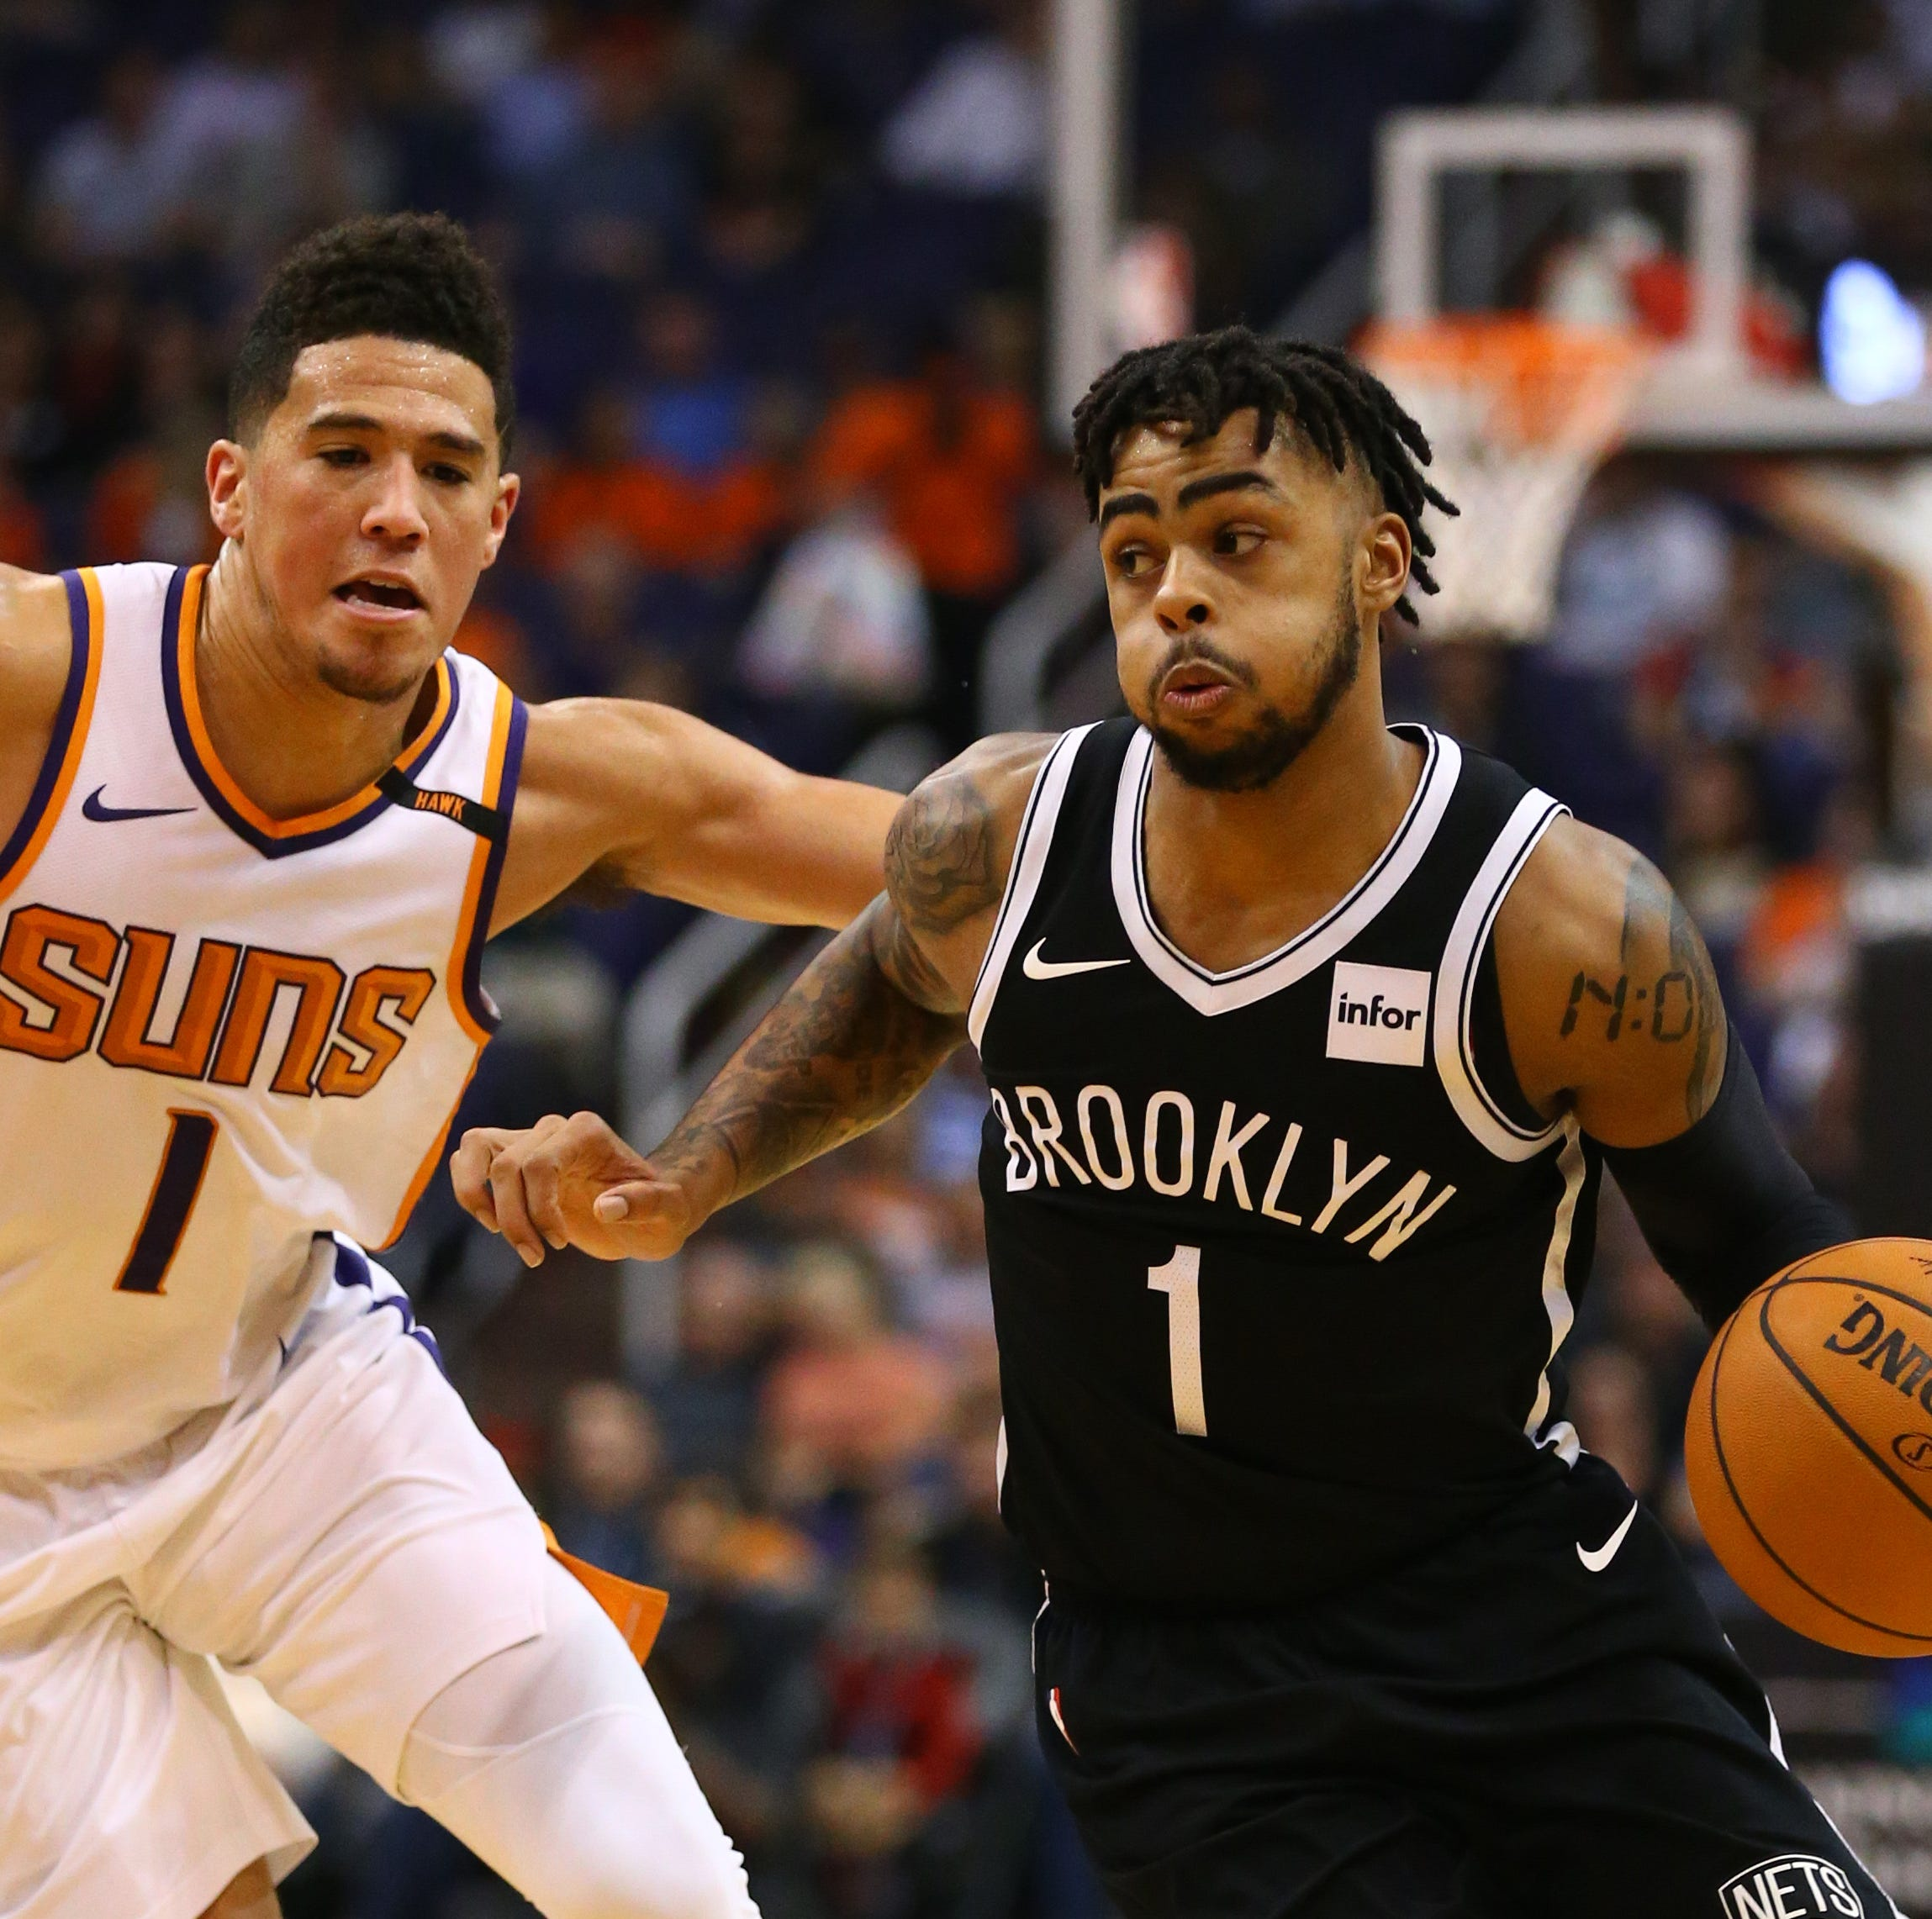 Suns free agency scenarios: How Phoenix could land D'Angelo Russell in NBA free agency